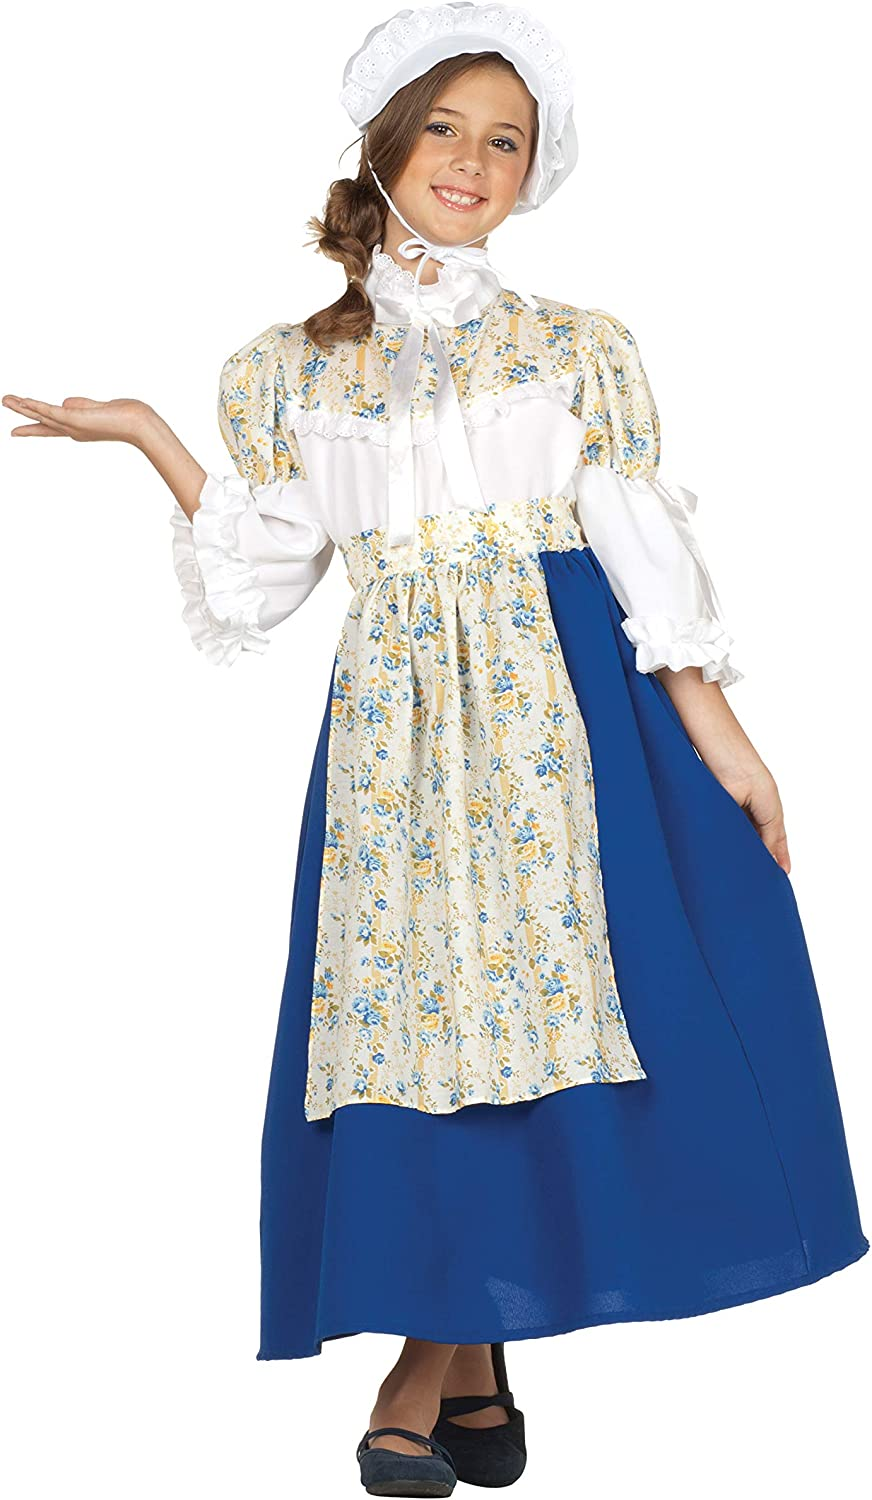 RG Costumes Colonial Beauty Costume, Blau Weiß Gelb, Medium